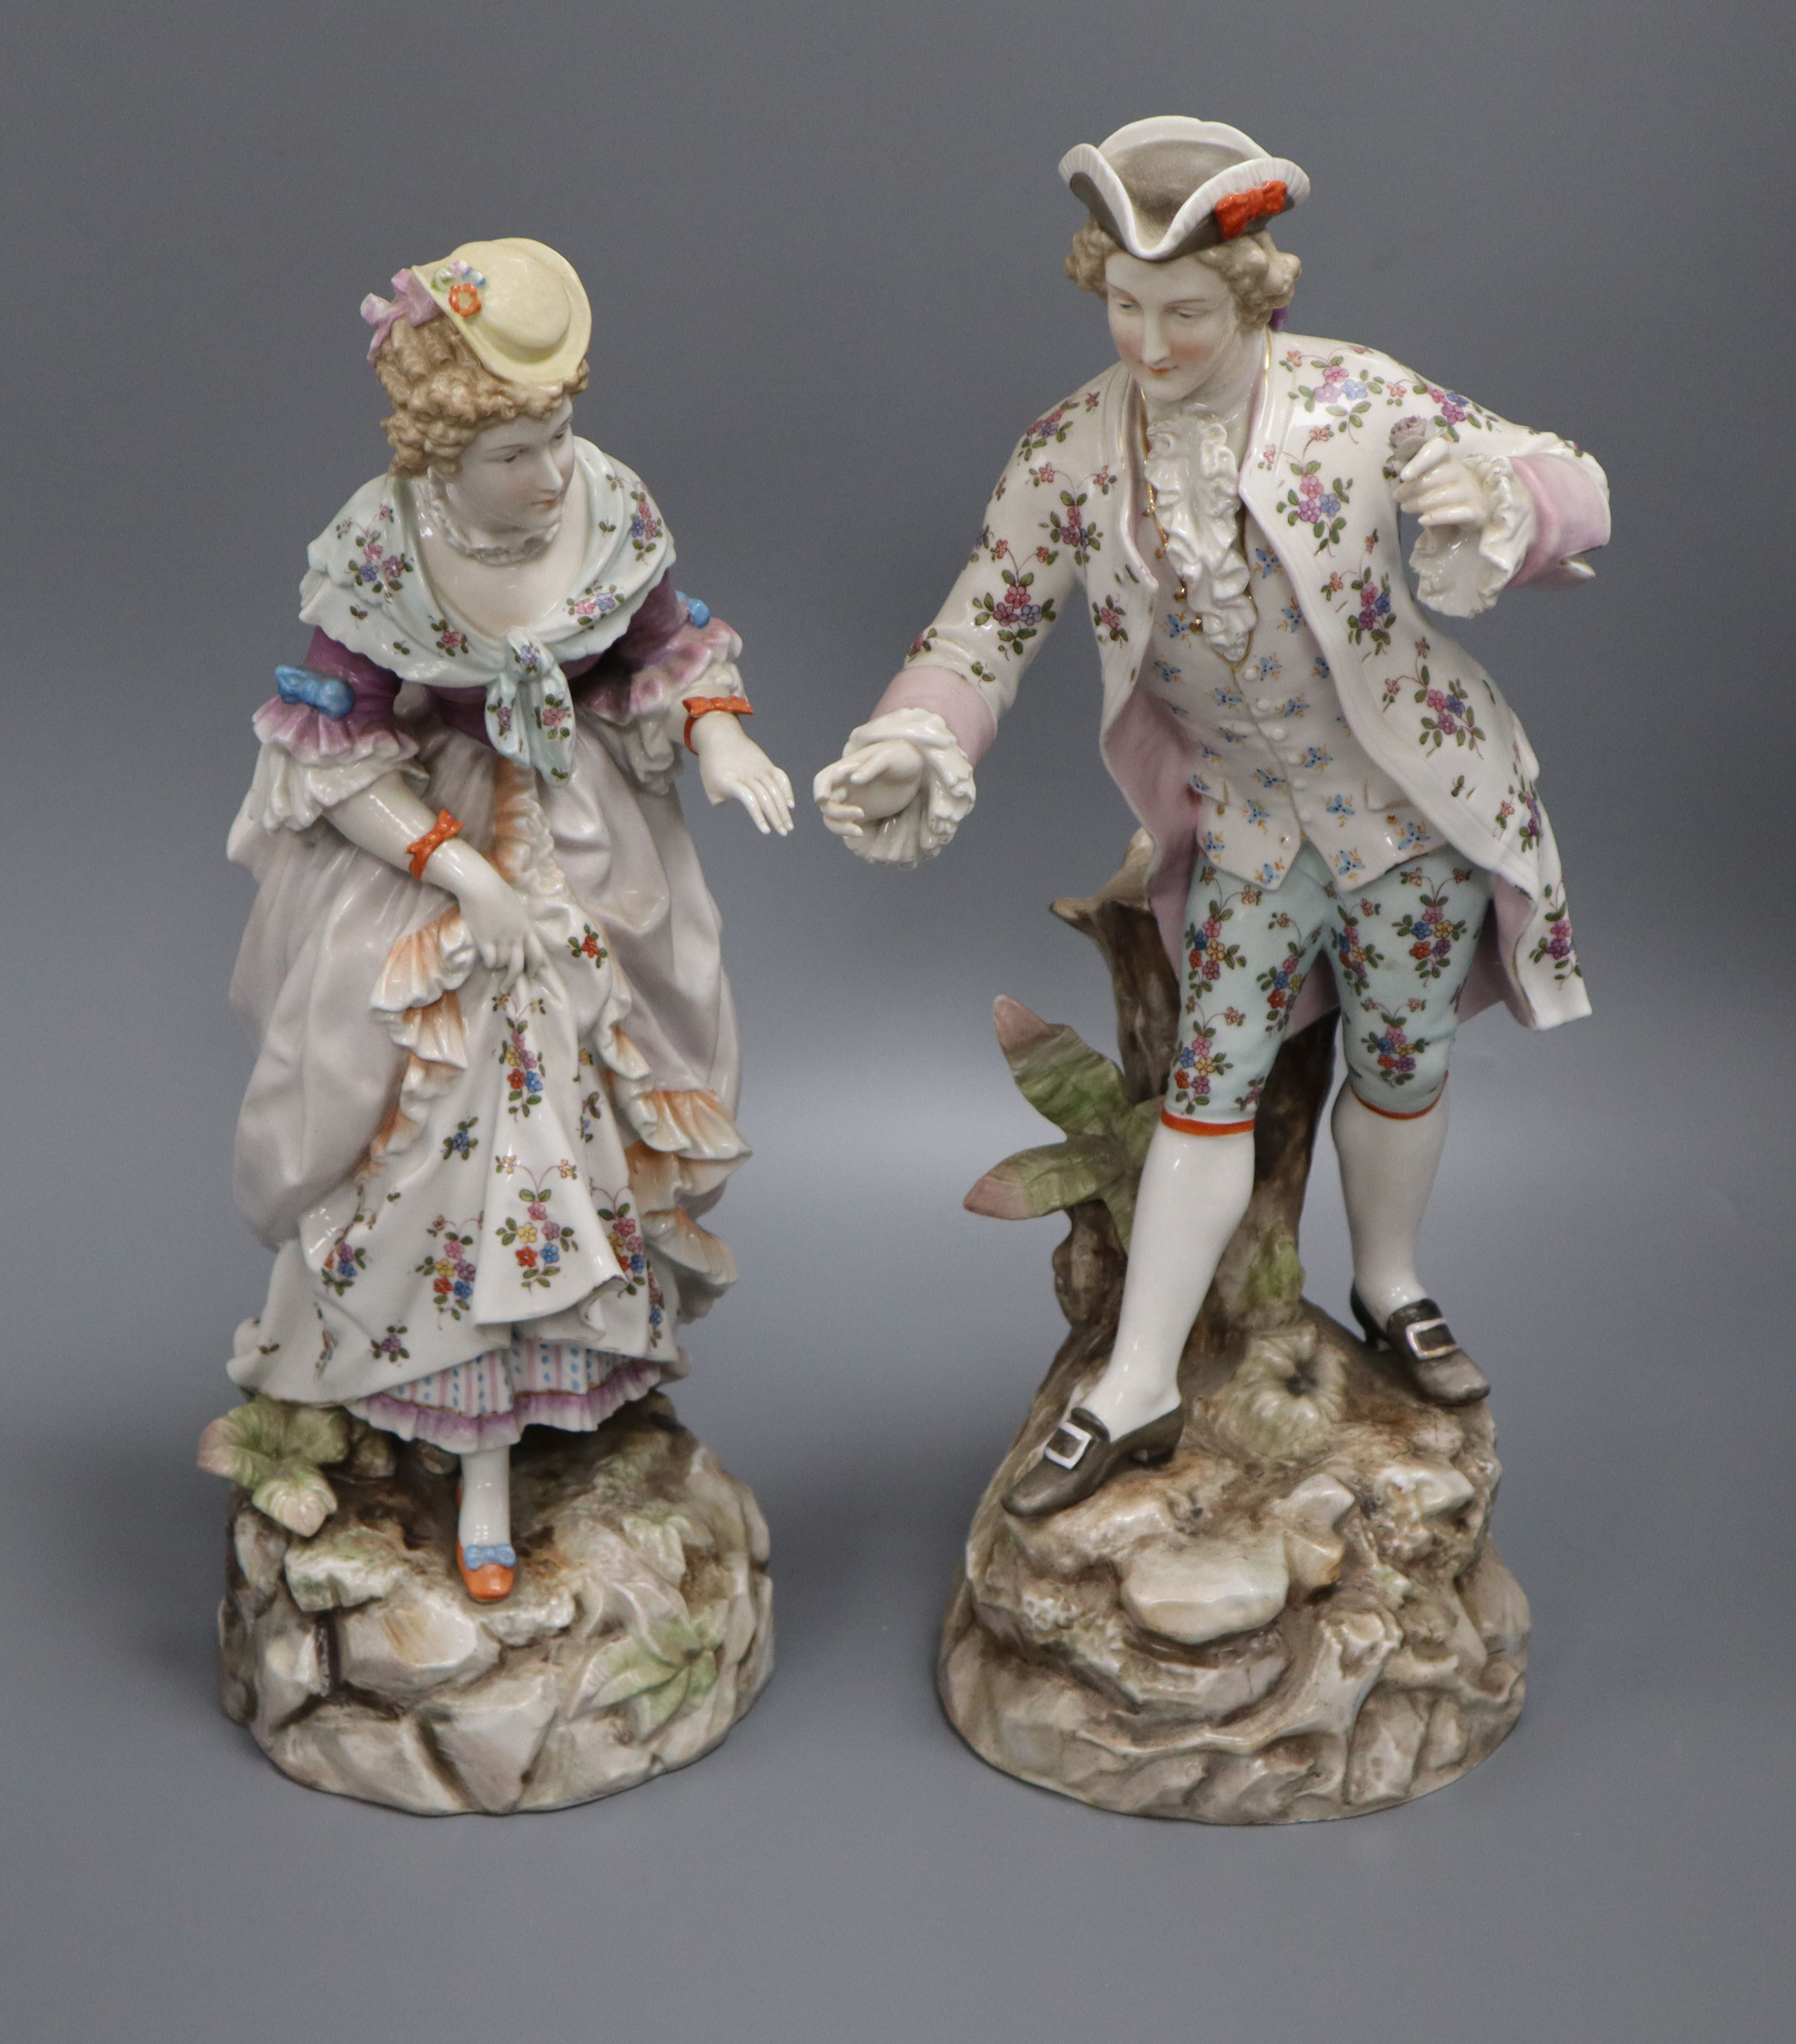 Lot 35 - A pair of Rudolstedt Volkstedt porcelain figures height 37cm